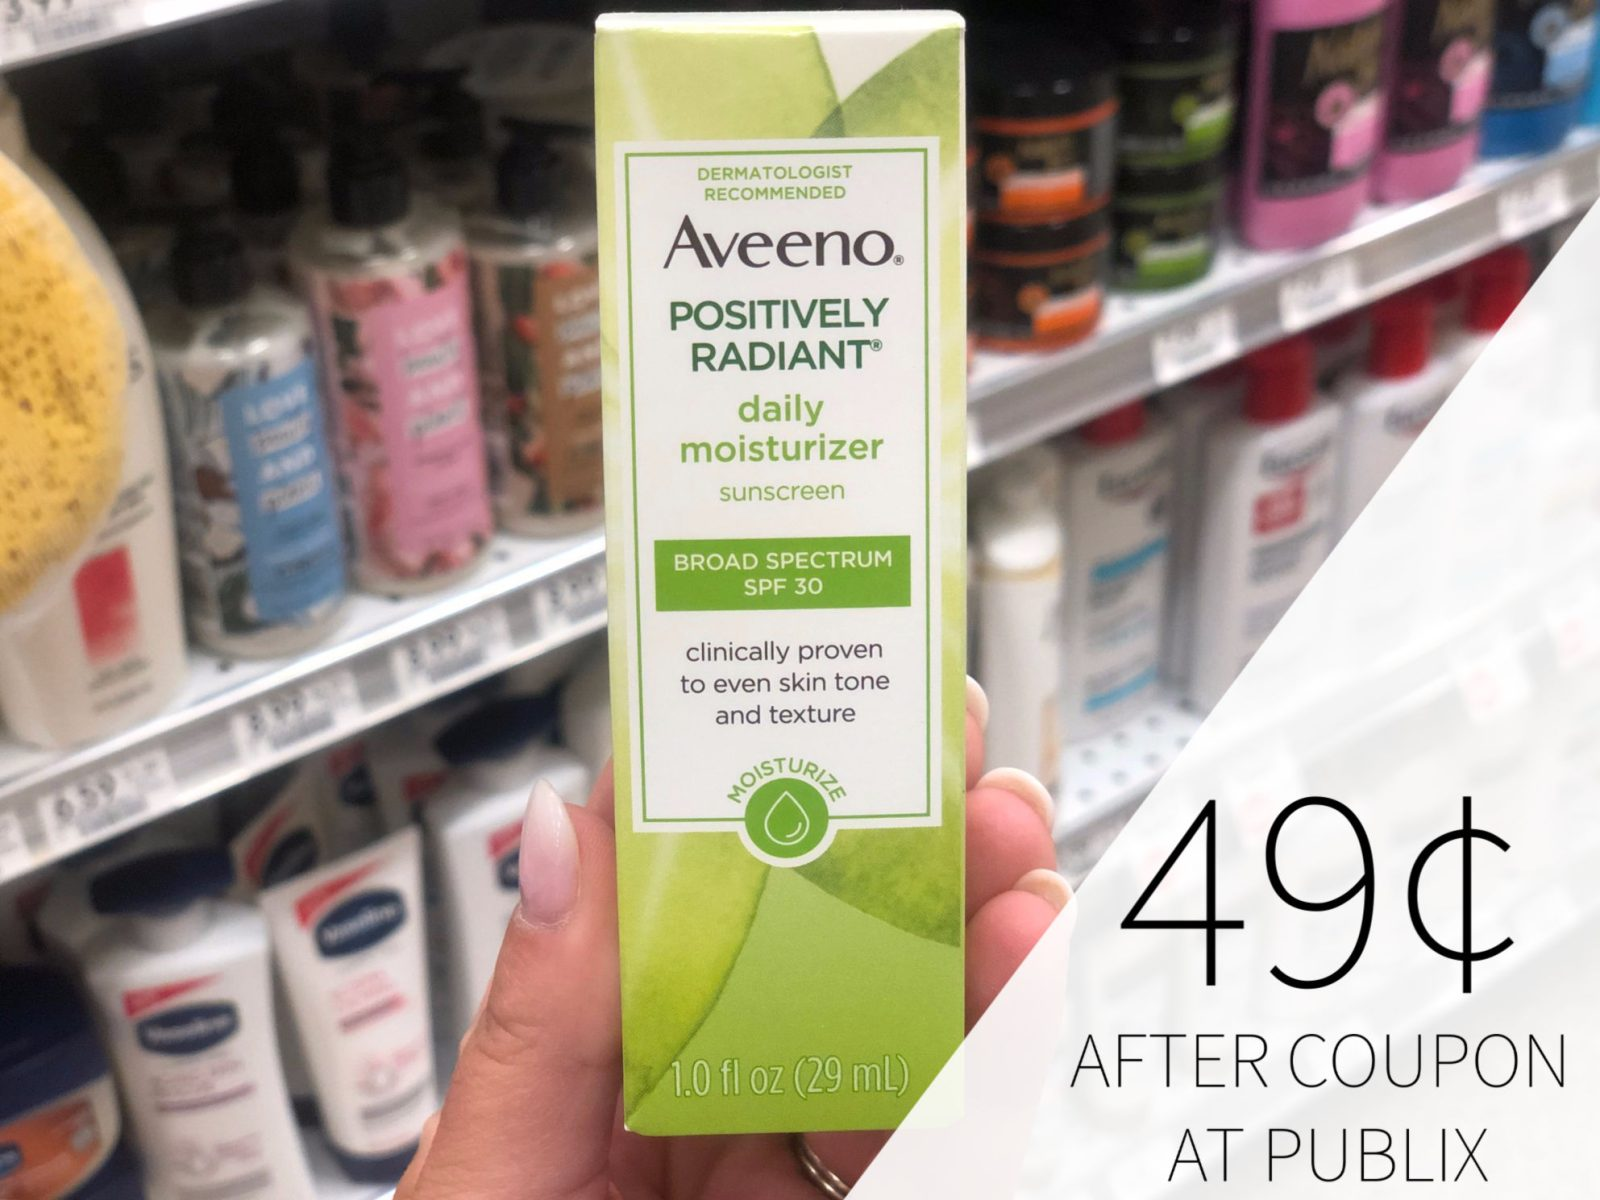 New Aveeno Coupons For The Upcoming Publix Sale - Print Now! on I Heart Publix